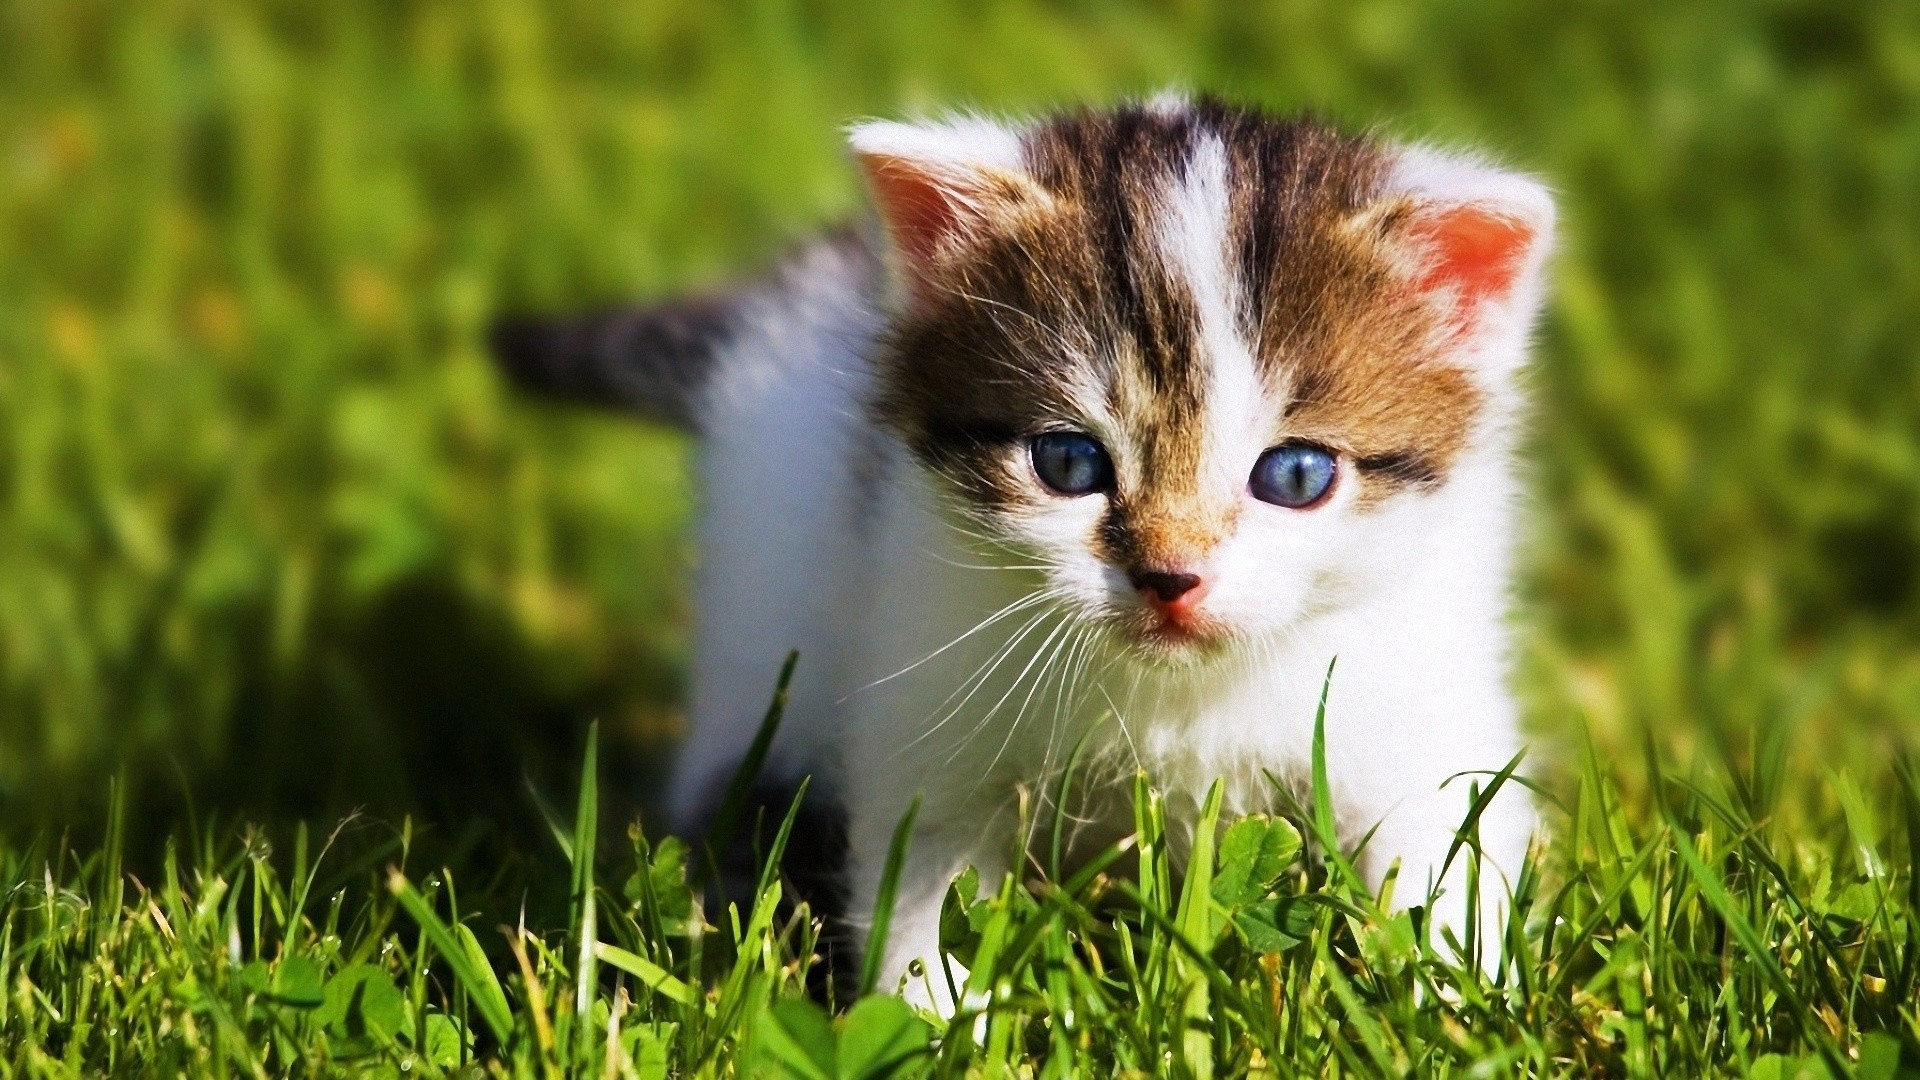 Res: 1920x1080, Baby Animal Wallpaper HD Images – One HD Wallpaper Pictures Backgrounds  FREE Download